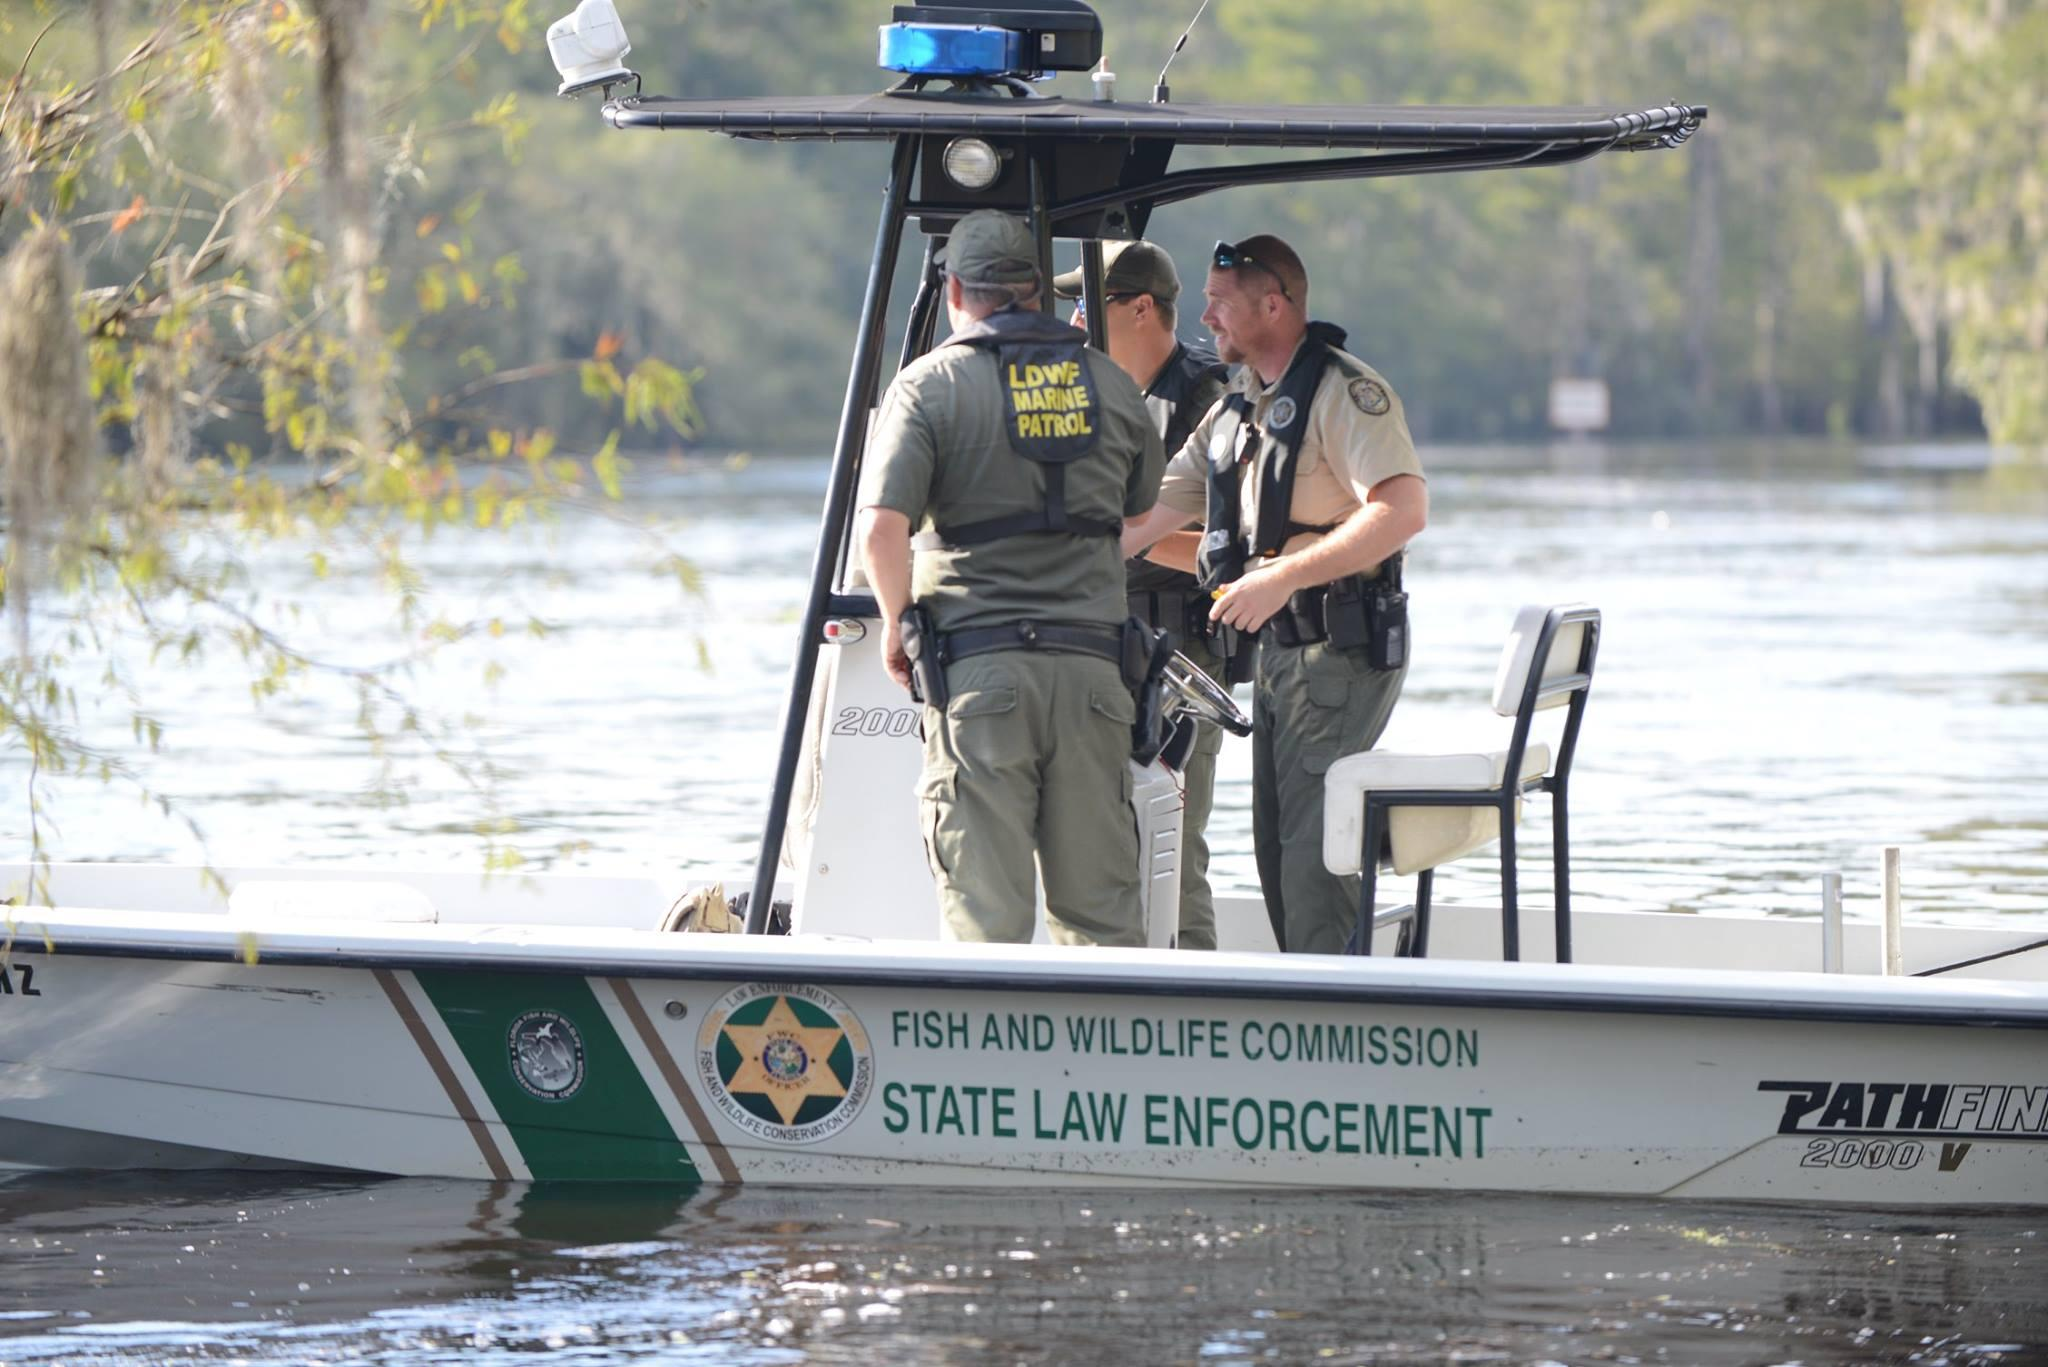 Body cams wildlife officer positions among fwc 39 s 2018 for Florida fish and wildlife officer